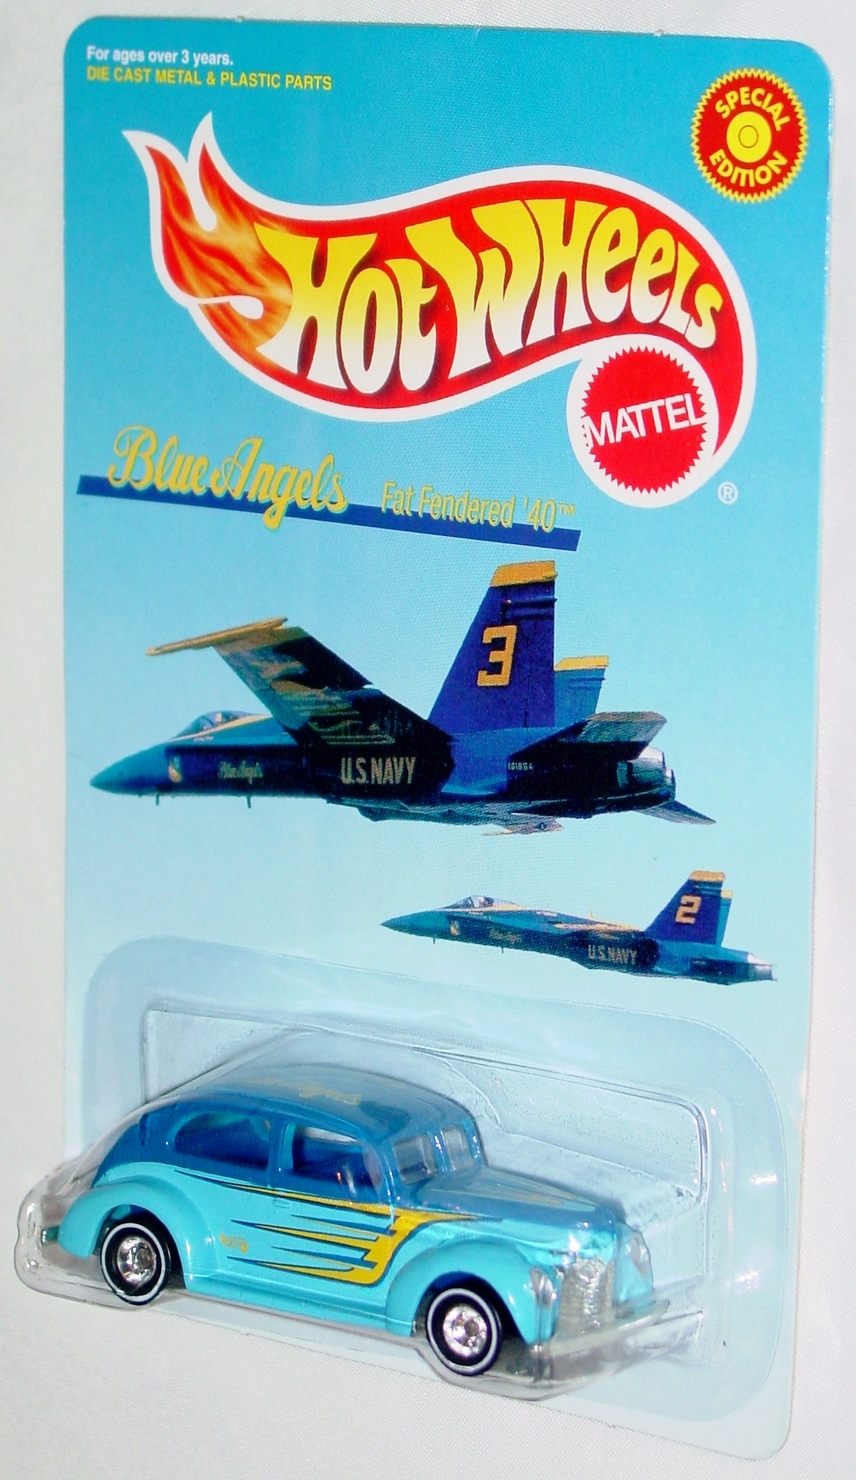 New Hot Wheels - BLUE ANGELS Fat Fendered 40